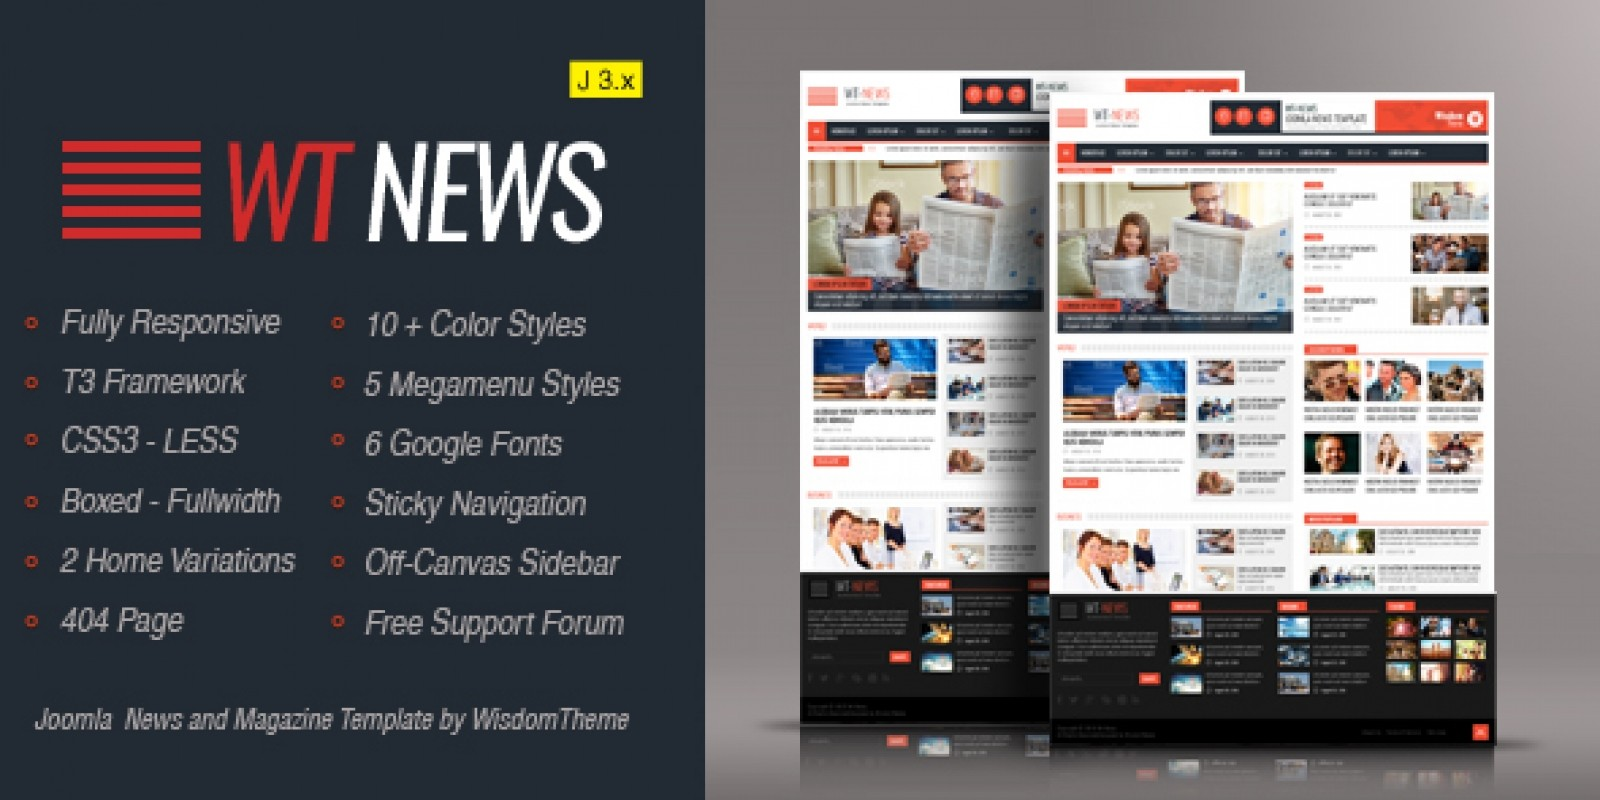 WT News Joomla News And Magazine Template